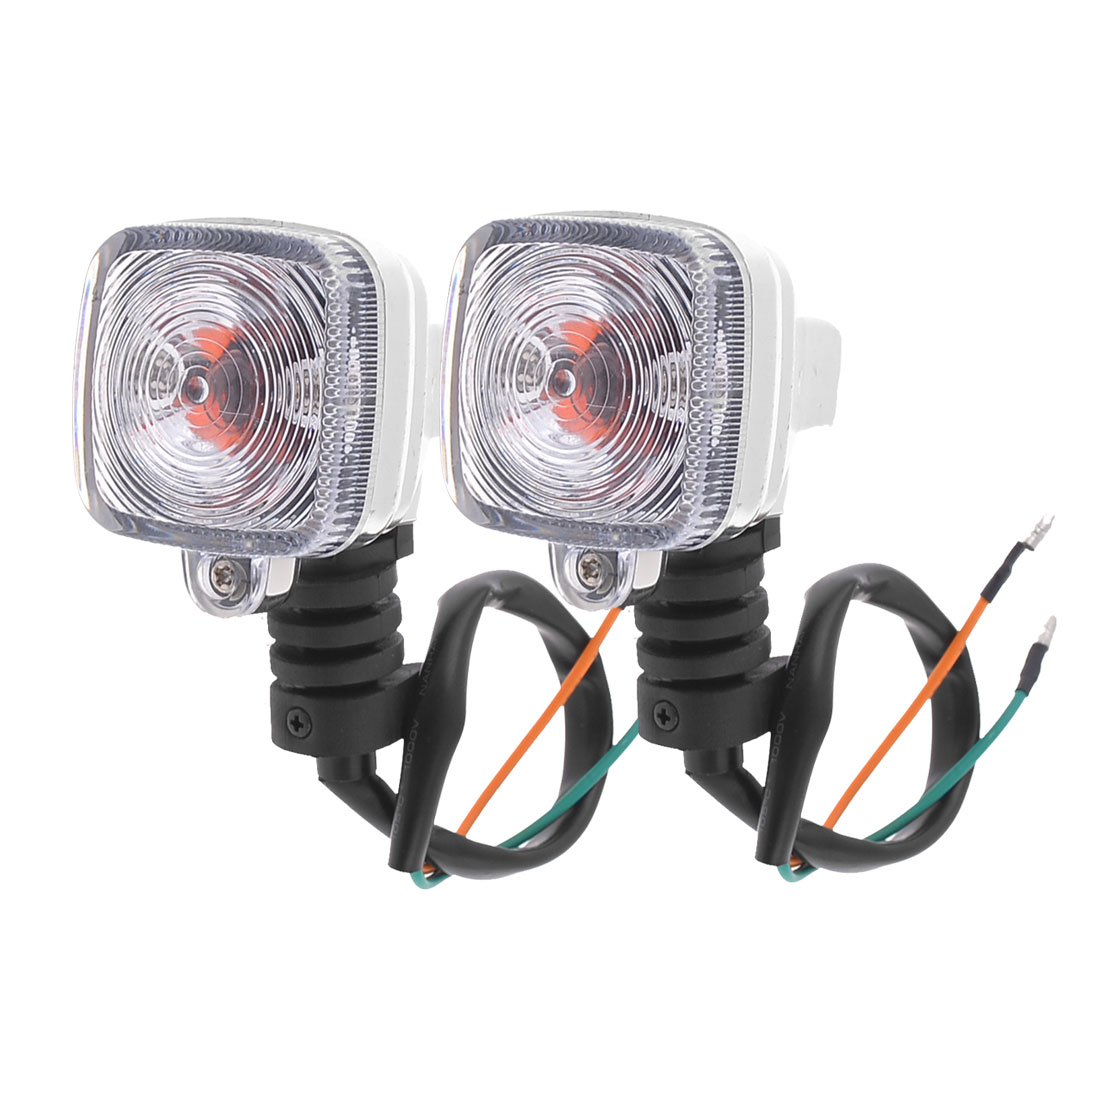 2PCS Motorbike Universal Square Shape Orange LED Turn Signal Light Steering Lamp